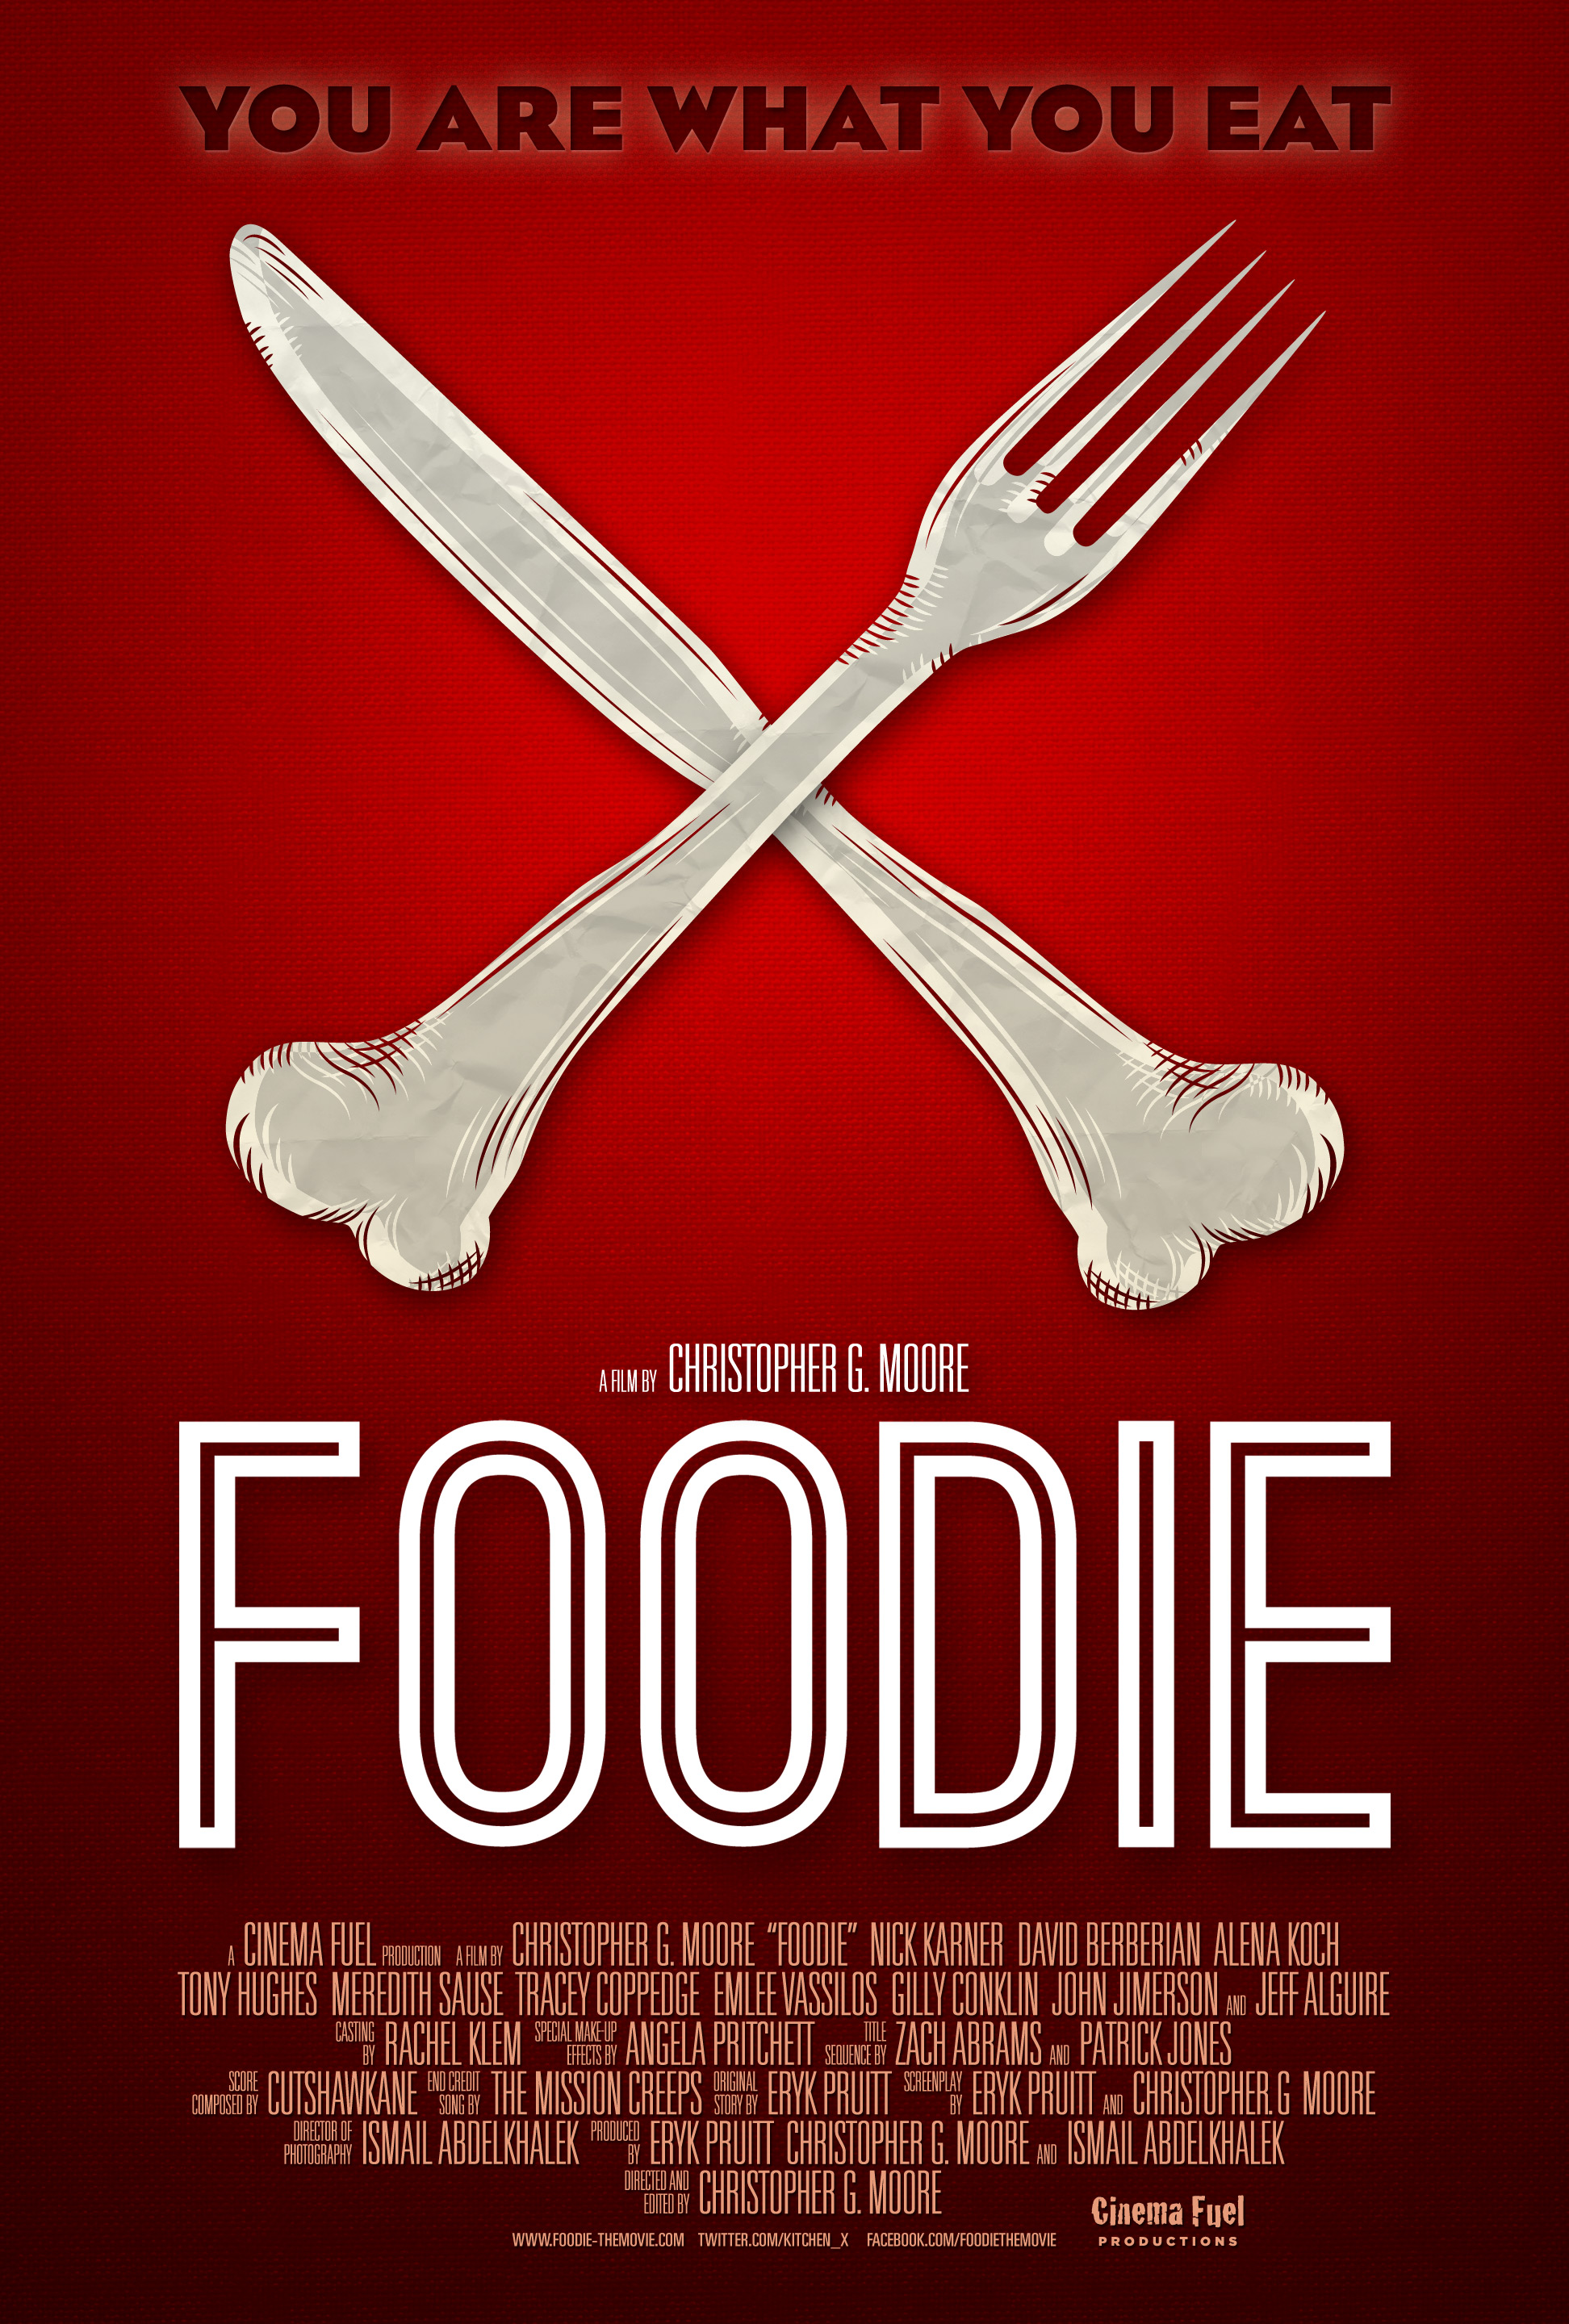 The Official Foodie Poster